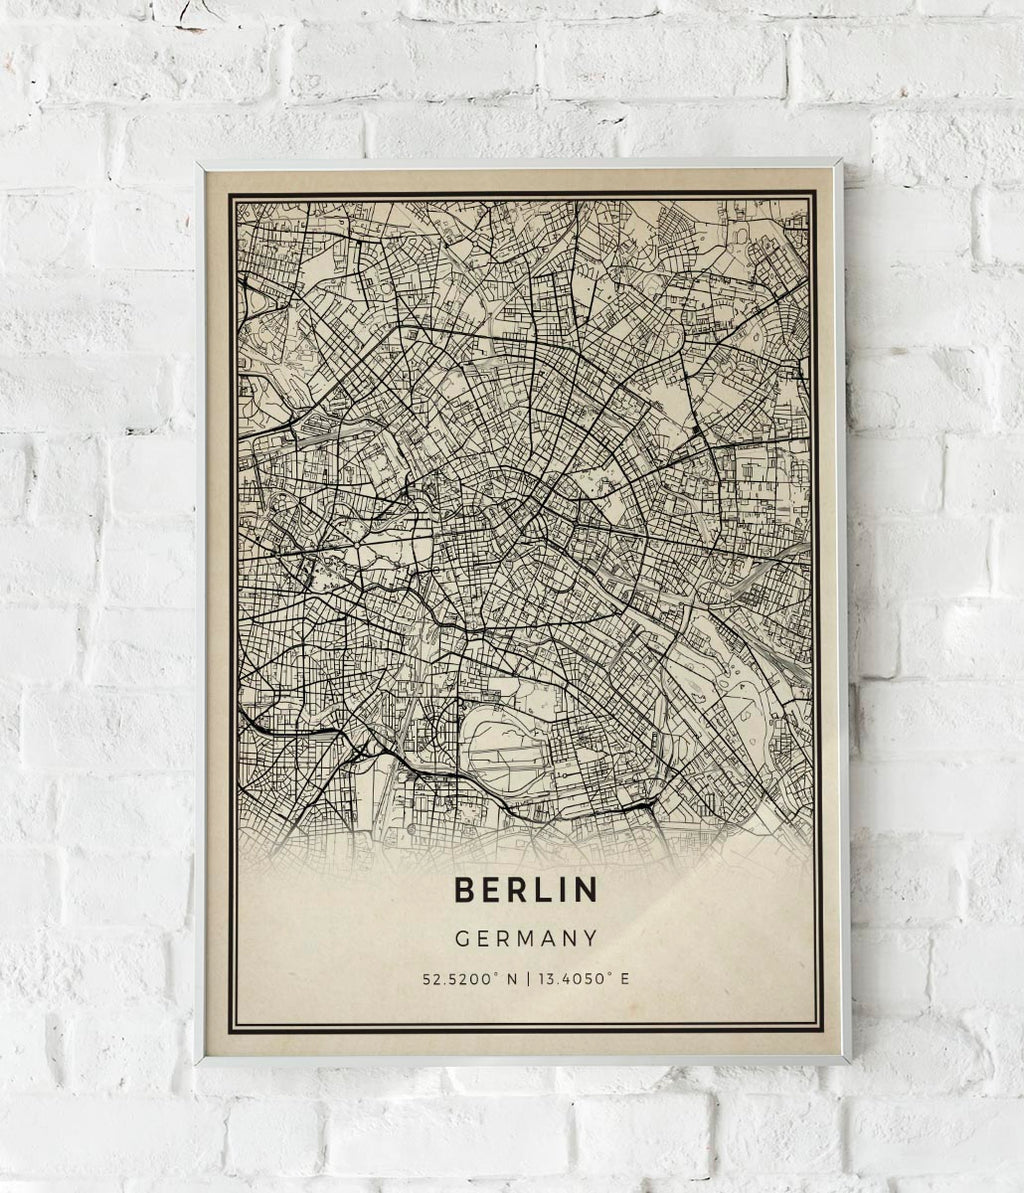 Berlin City Map Sepia Poster